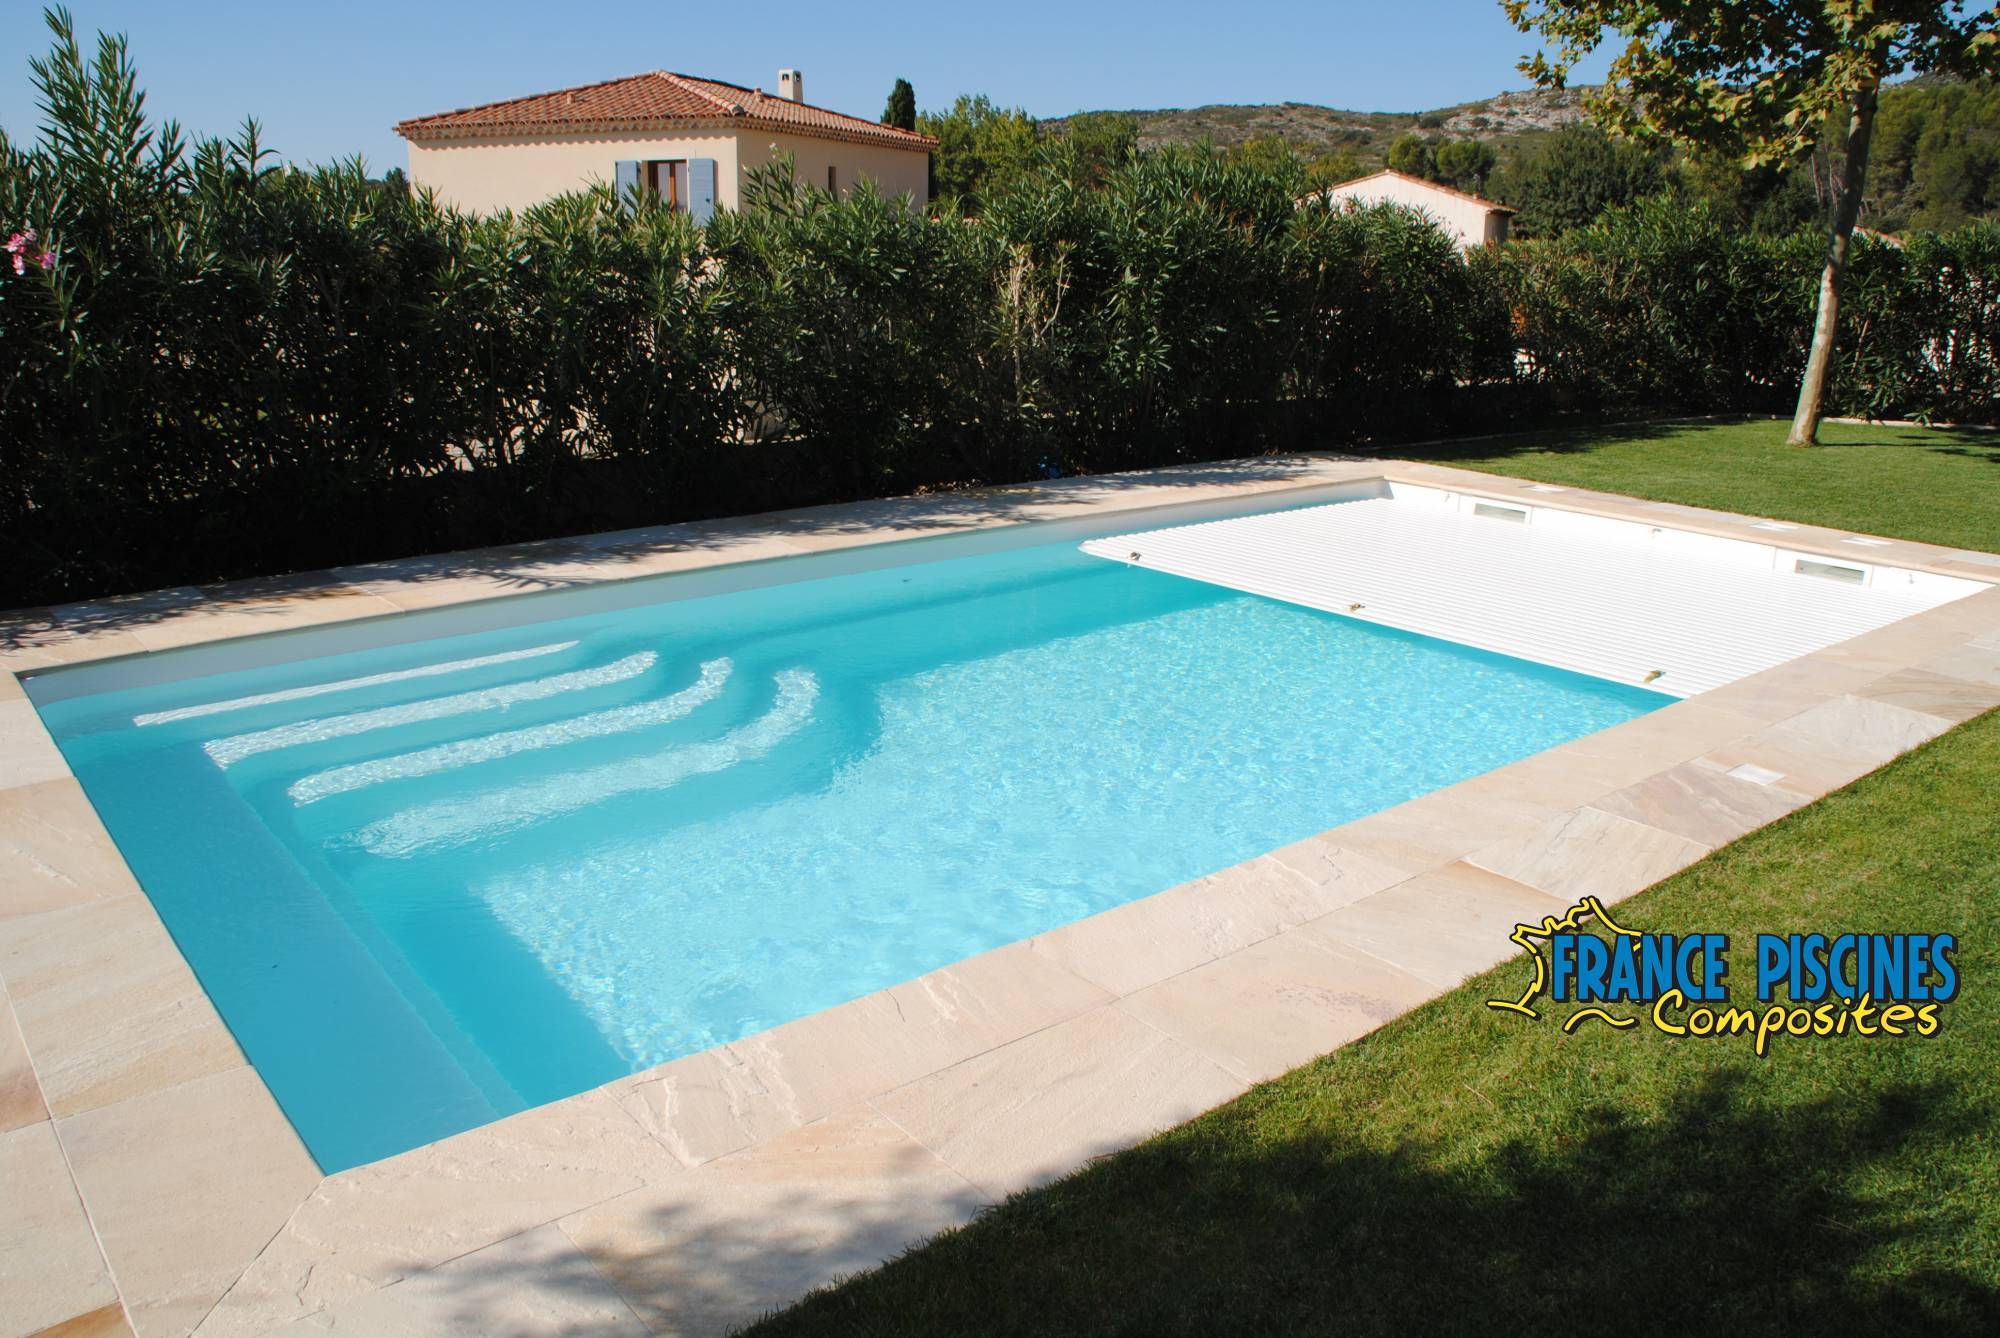 Vente et pose de piscine enterr e coque polyester for Piscine coque polyester d exposition